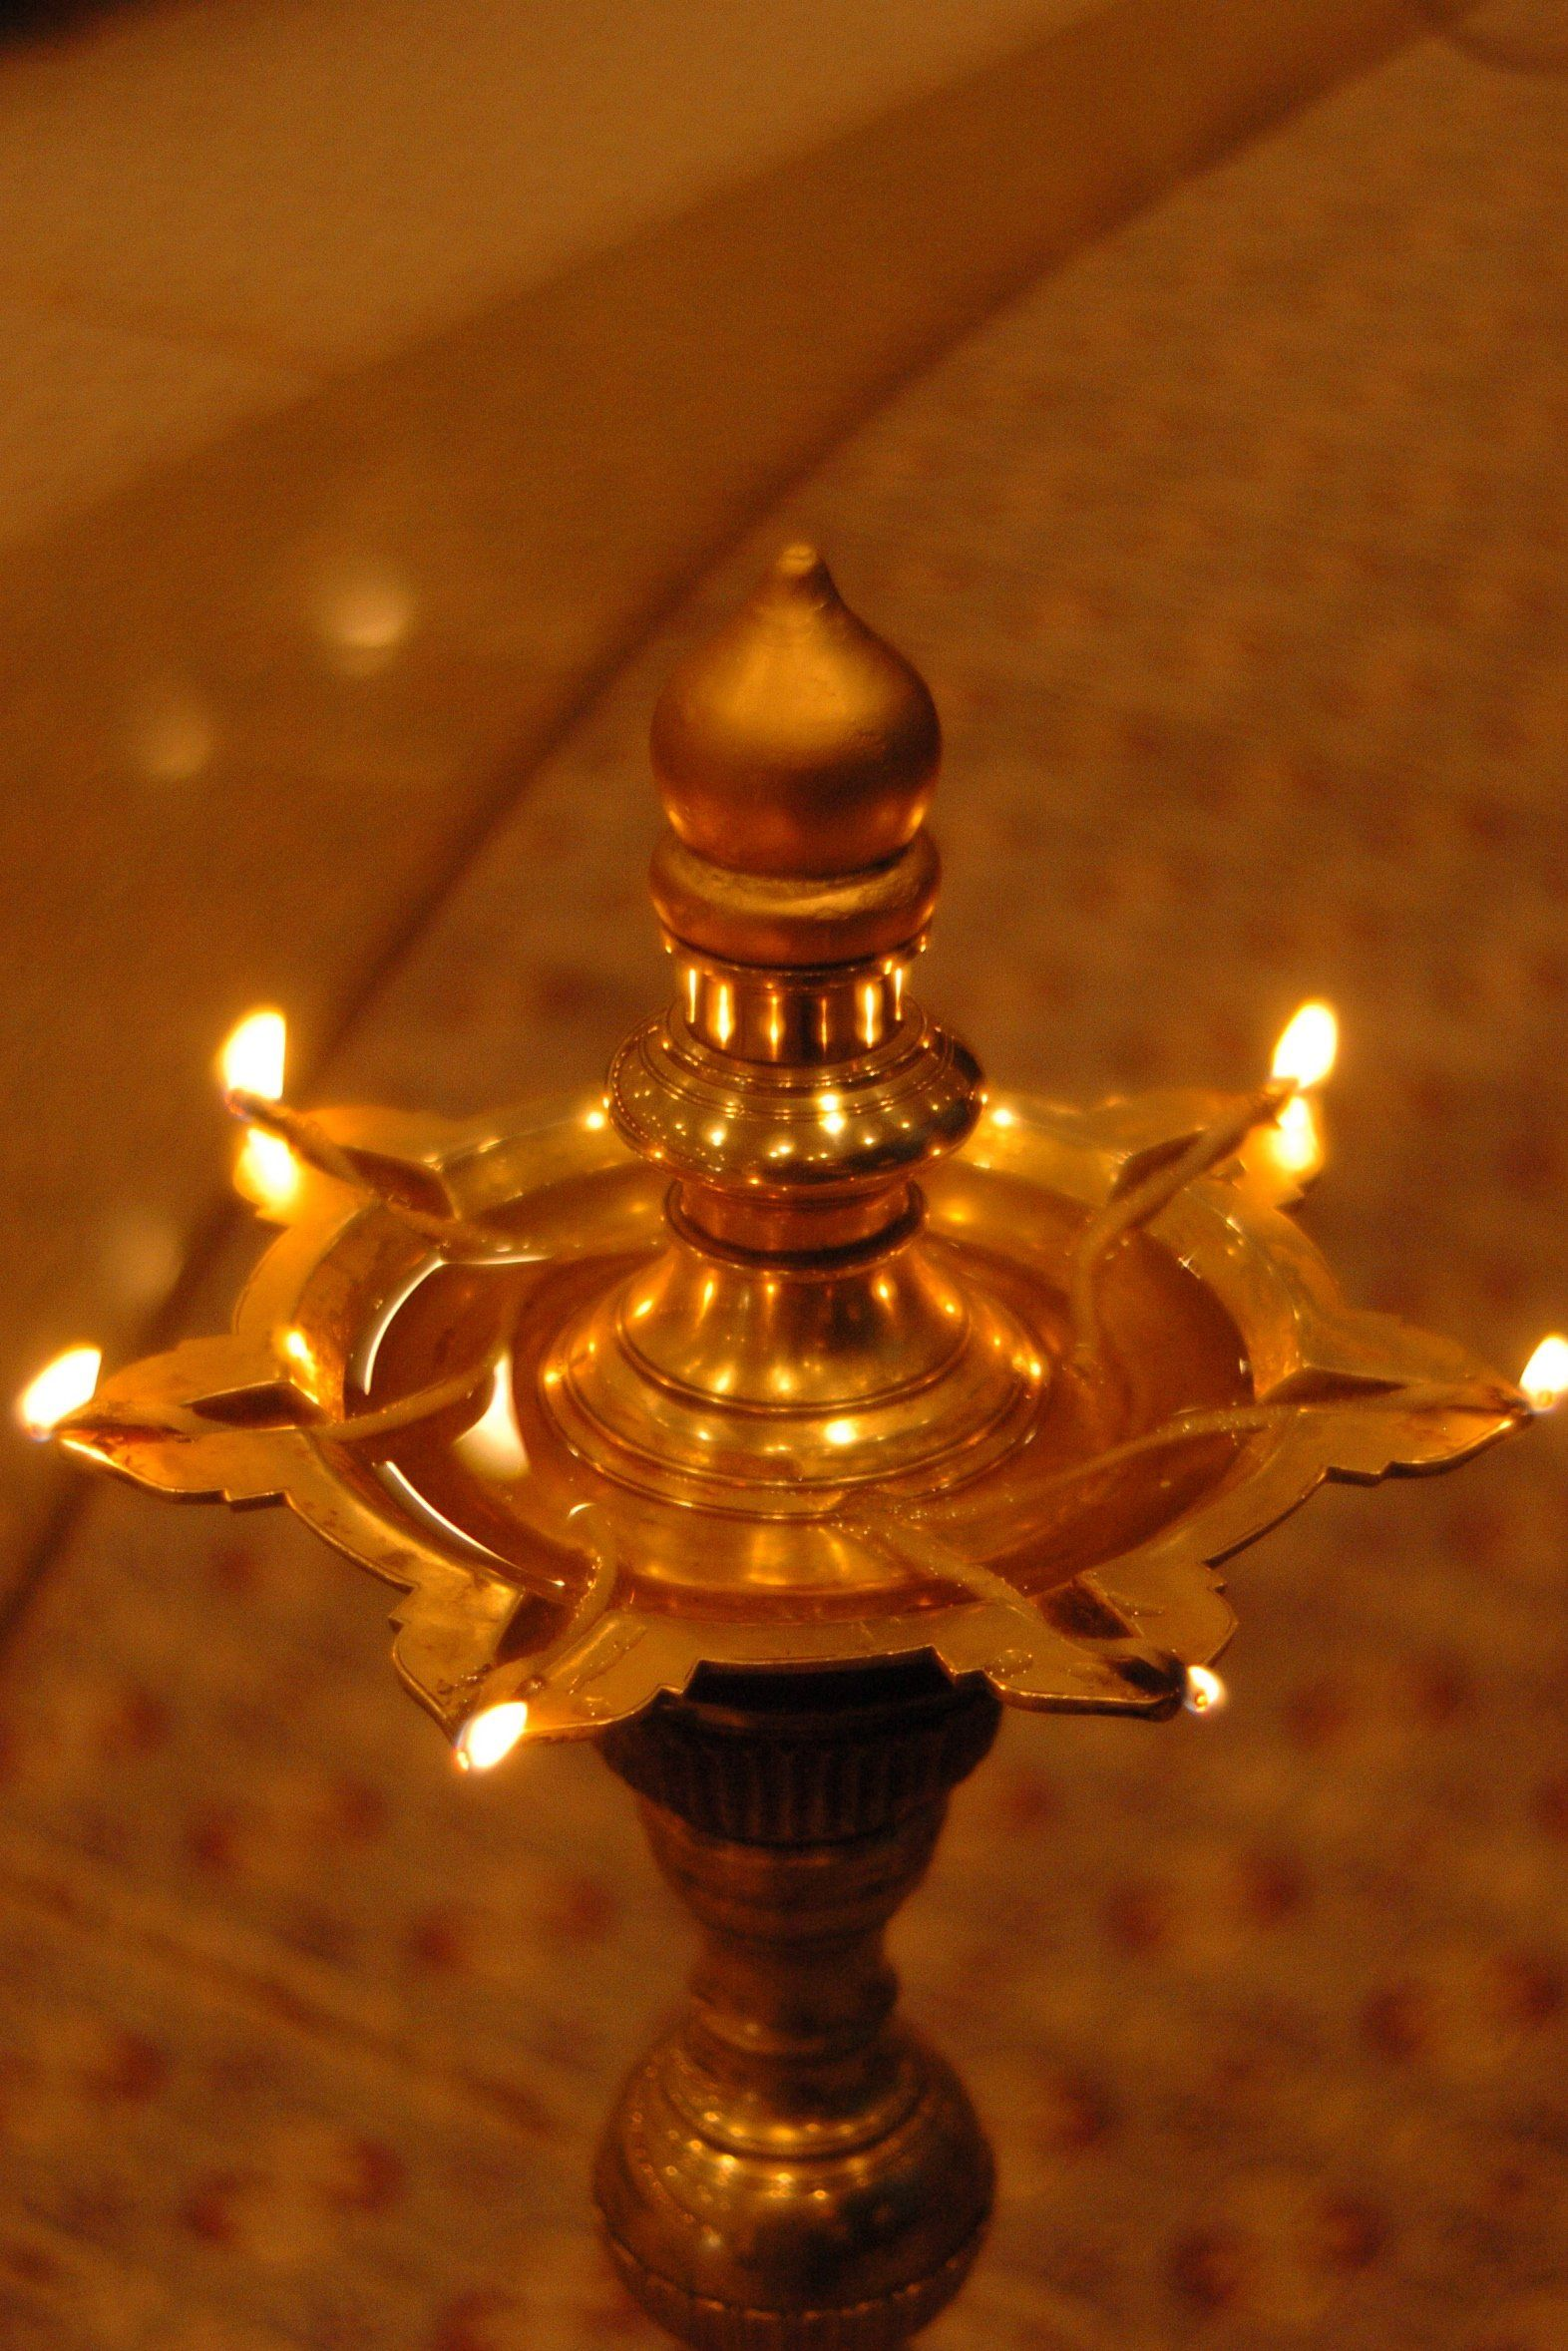 7 Wick Tower Lamp Oil Lamp Candle Antique Oil Lamps Oil Lamps